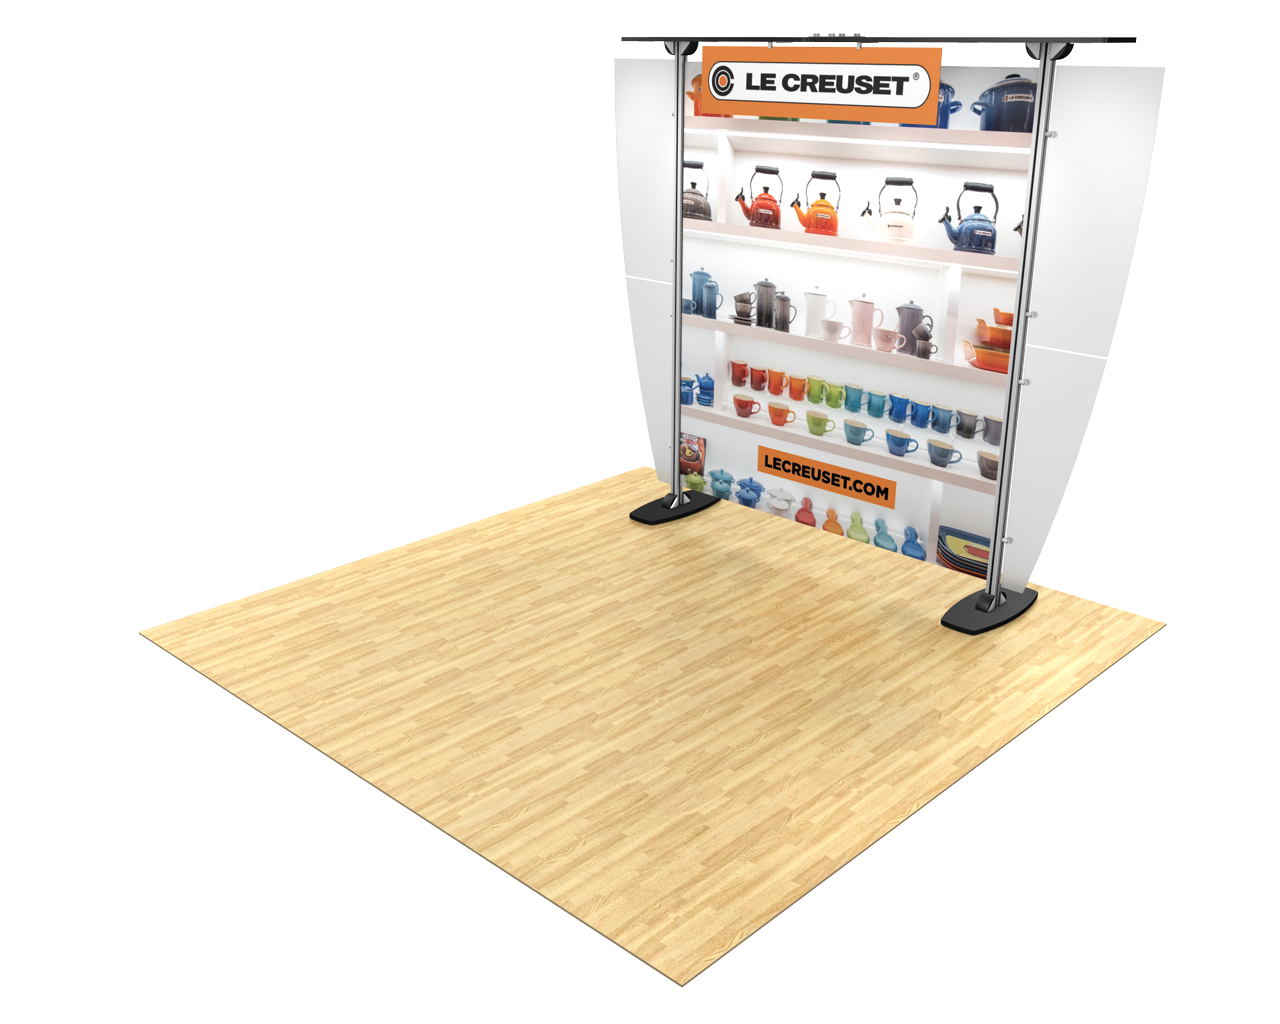 Exhibitline 10ft Trade Show Display - ex1.0 Model